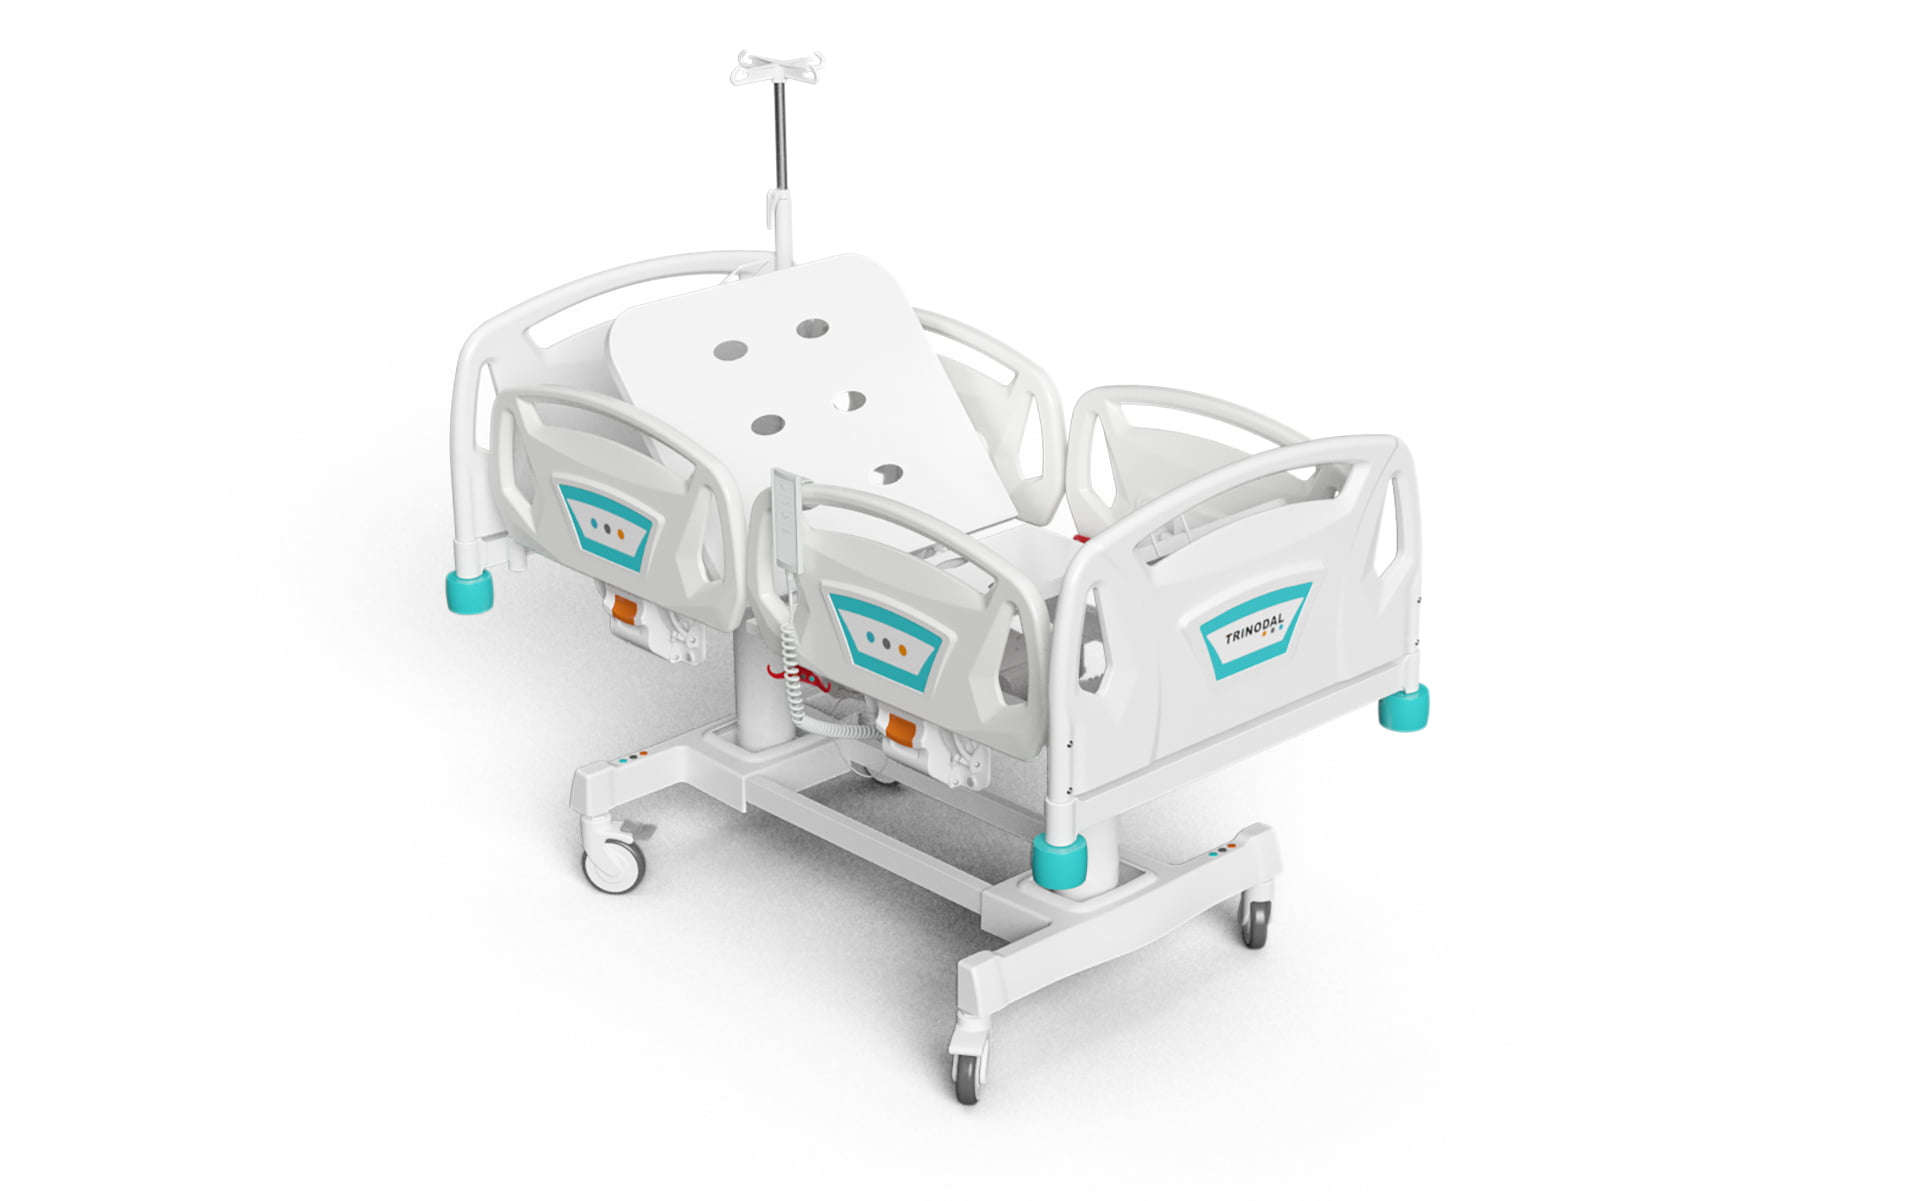 2 MOTORIZED PEDIATRIC BED WITH PP BOARDS